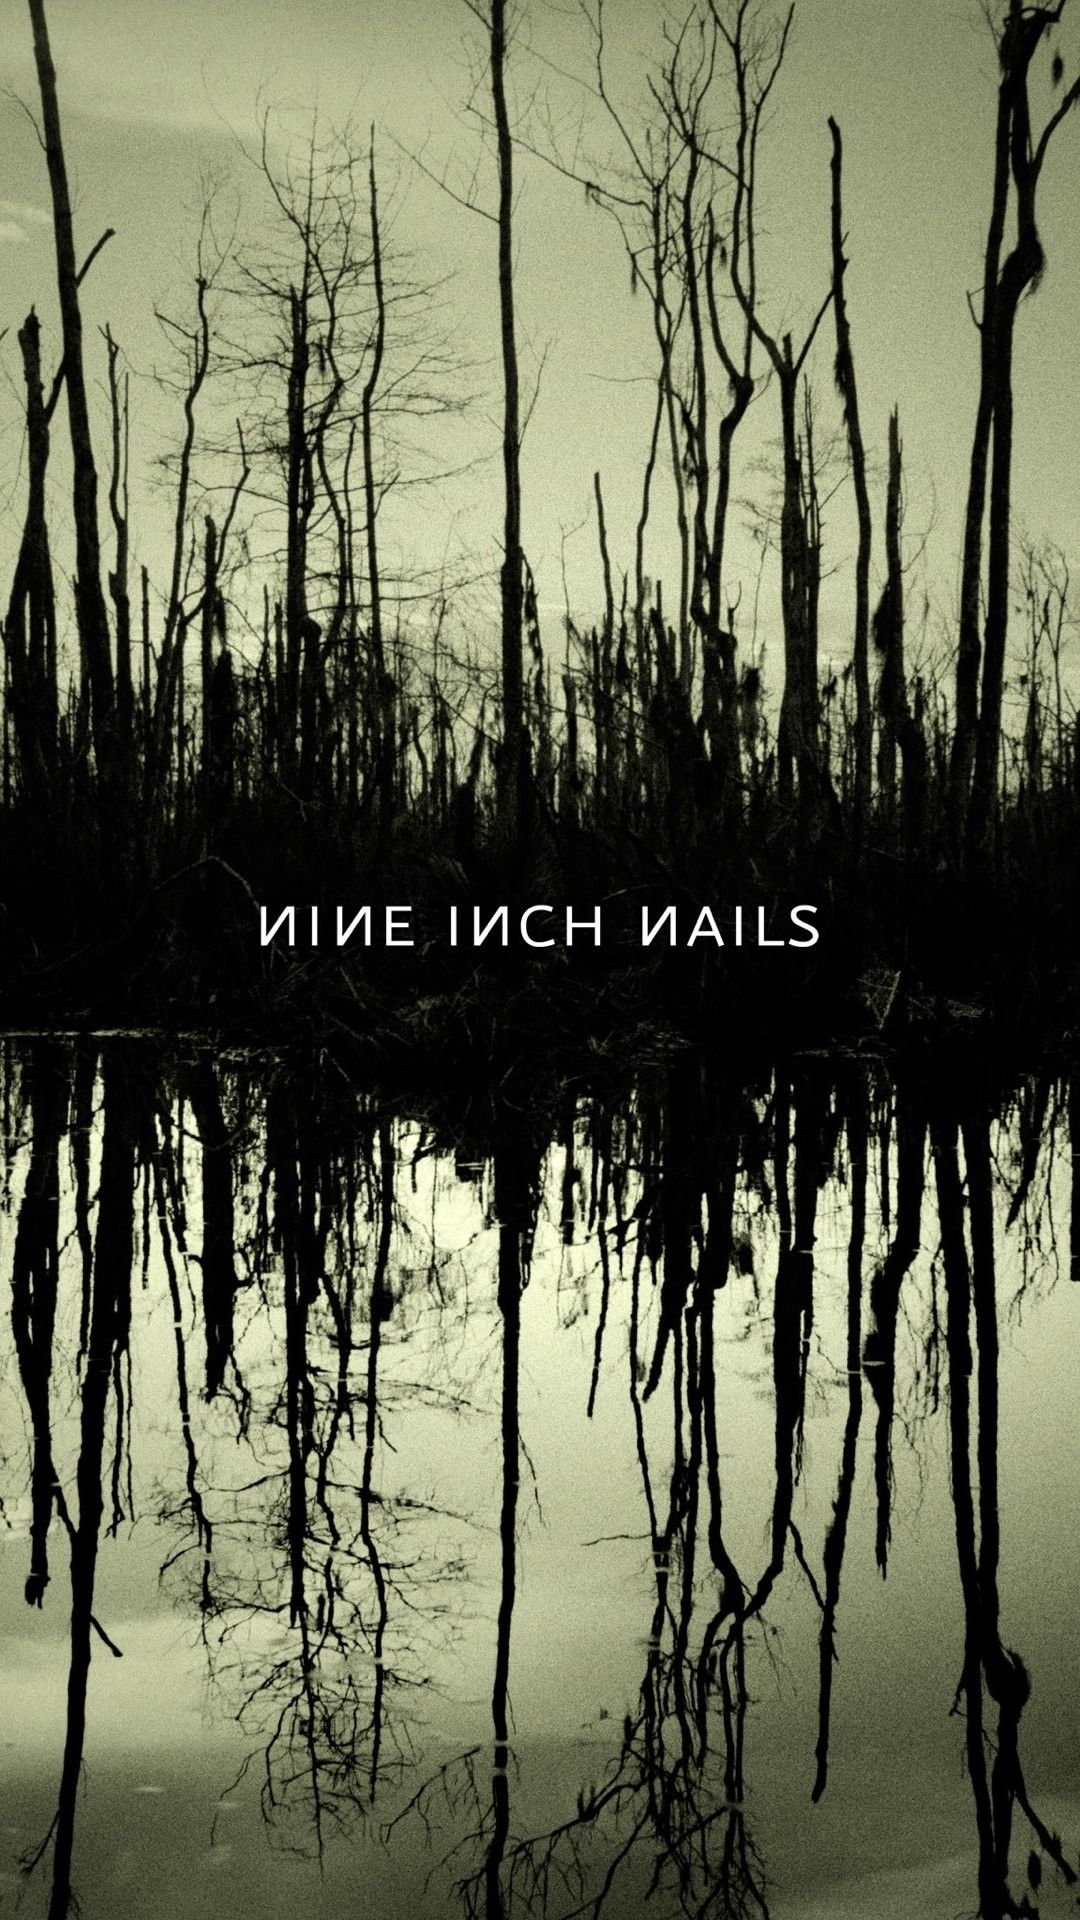 Pin by Wallpaper on Nine Inch Nails Wallpapers